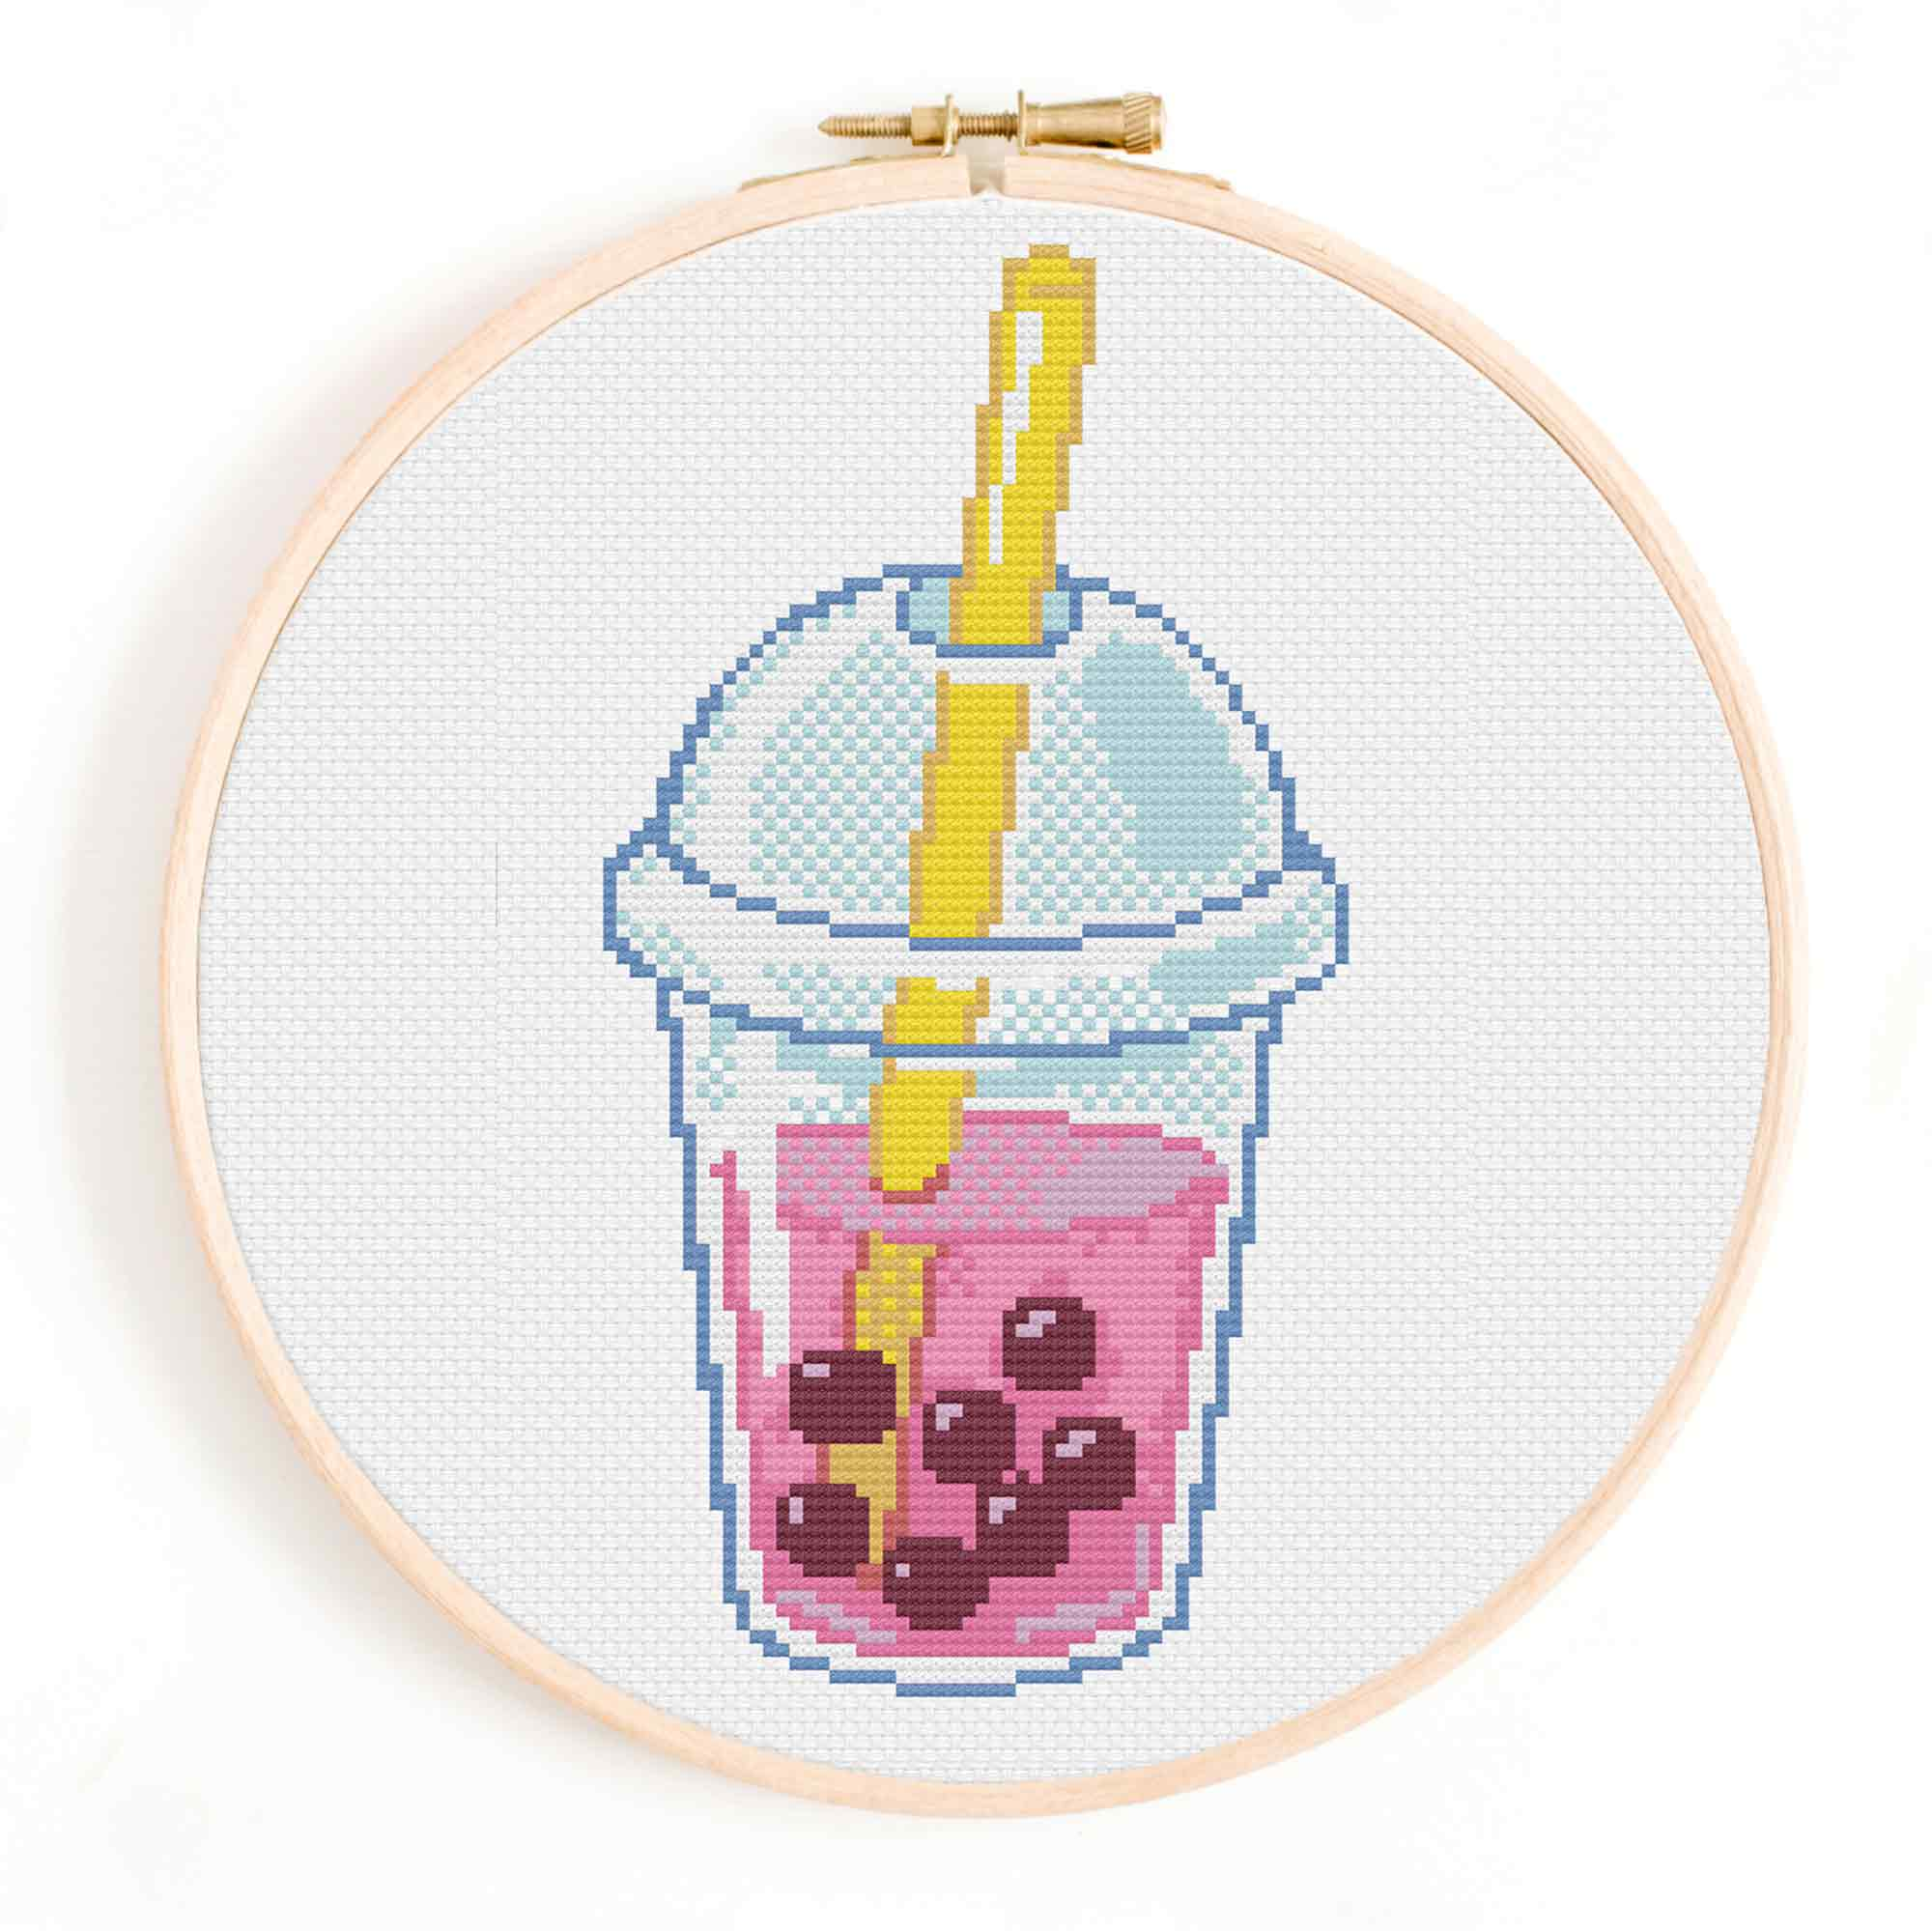 Boba Tea Cross Stitch Pattern